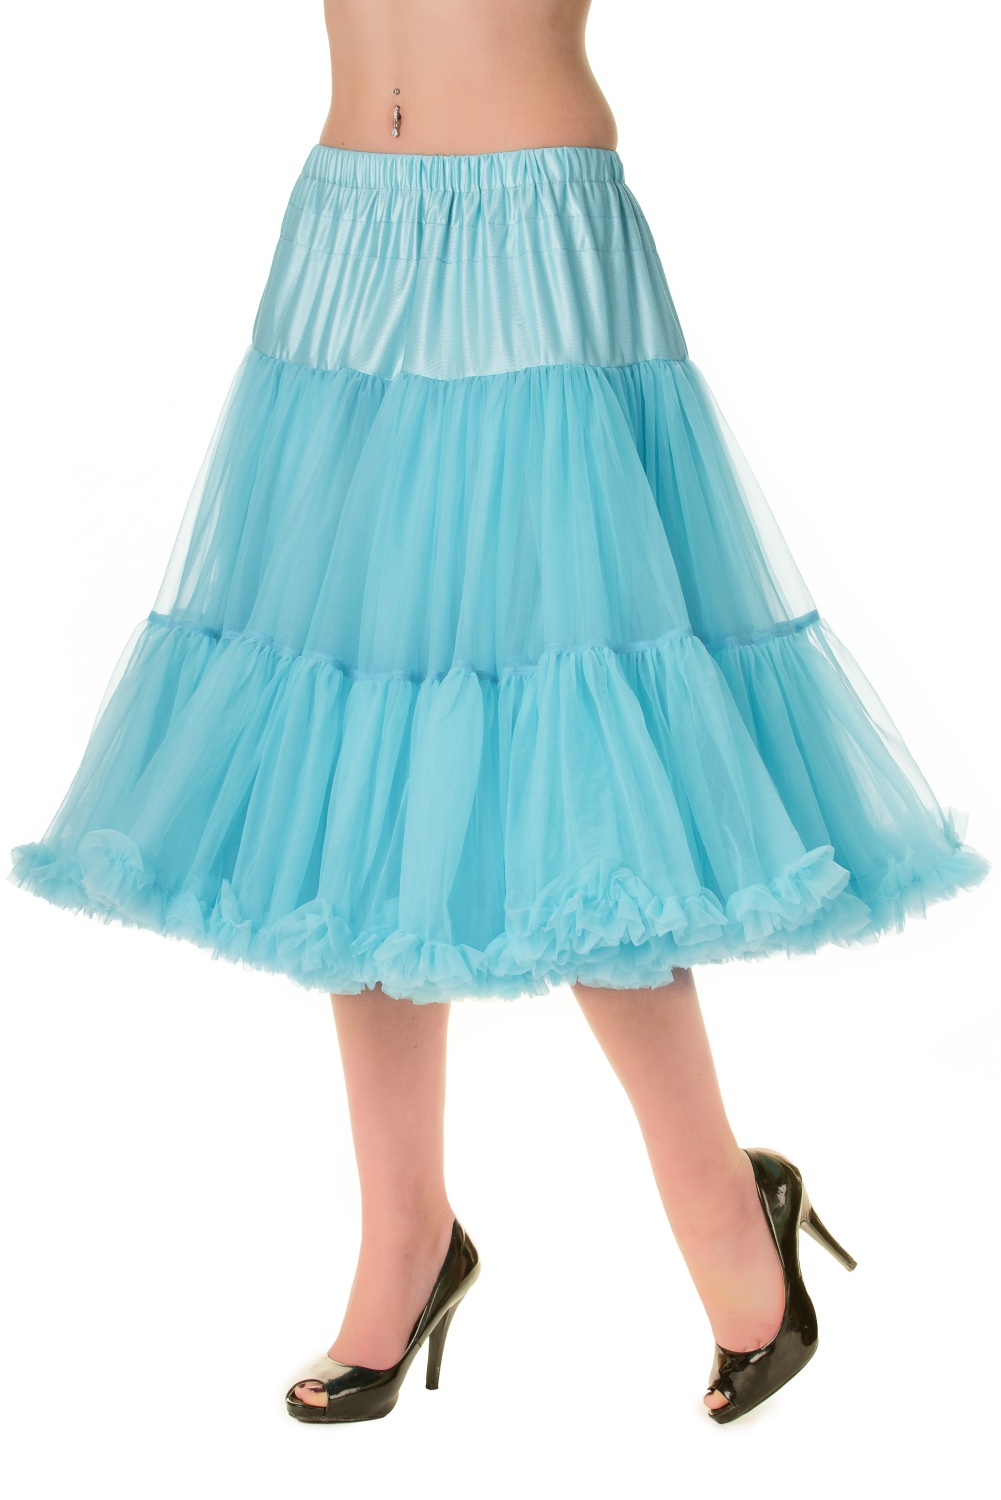 Banned Retro 50s Lizzy Lifeforms Blue Petticoat